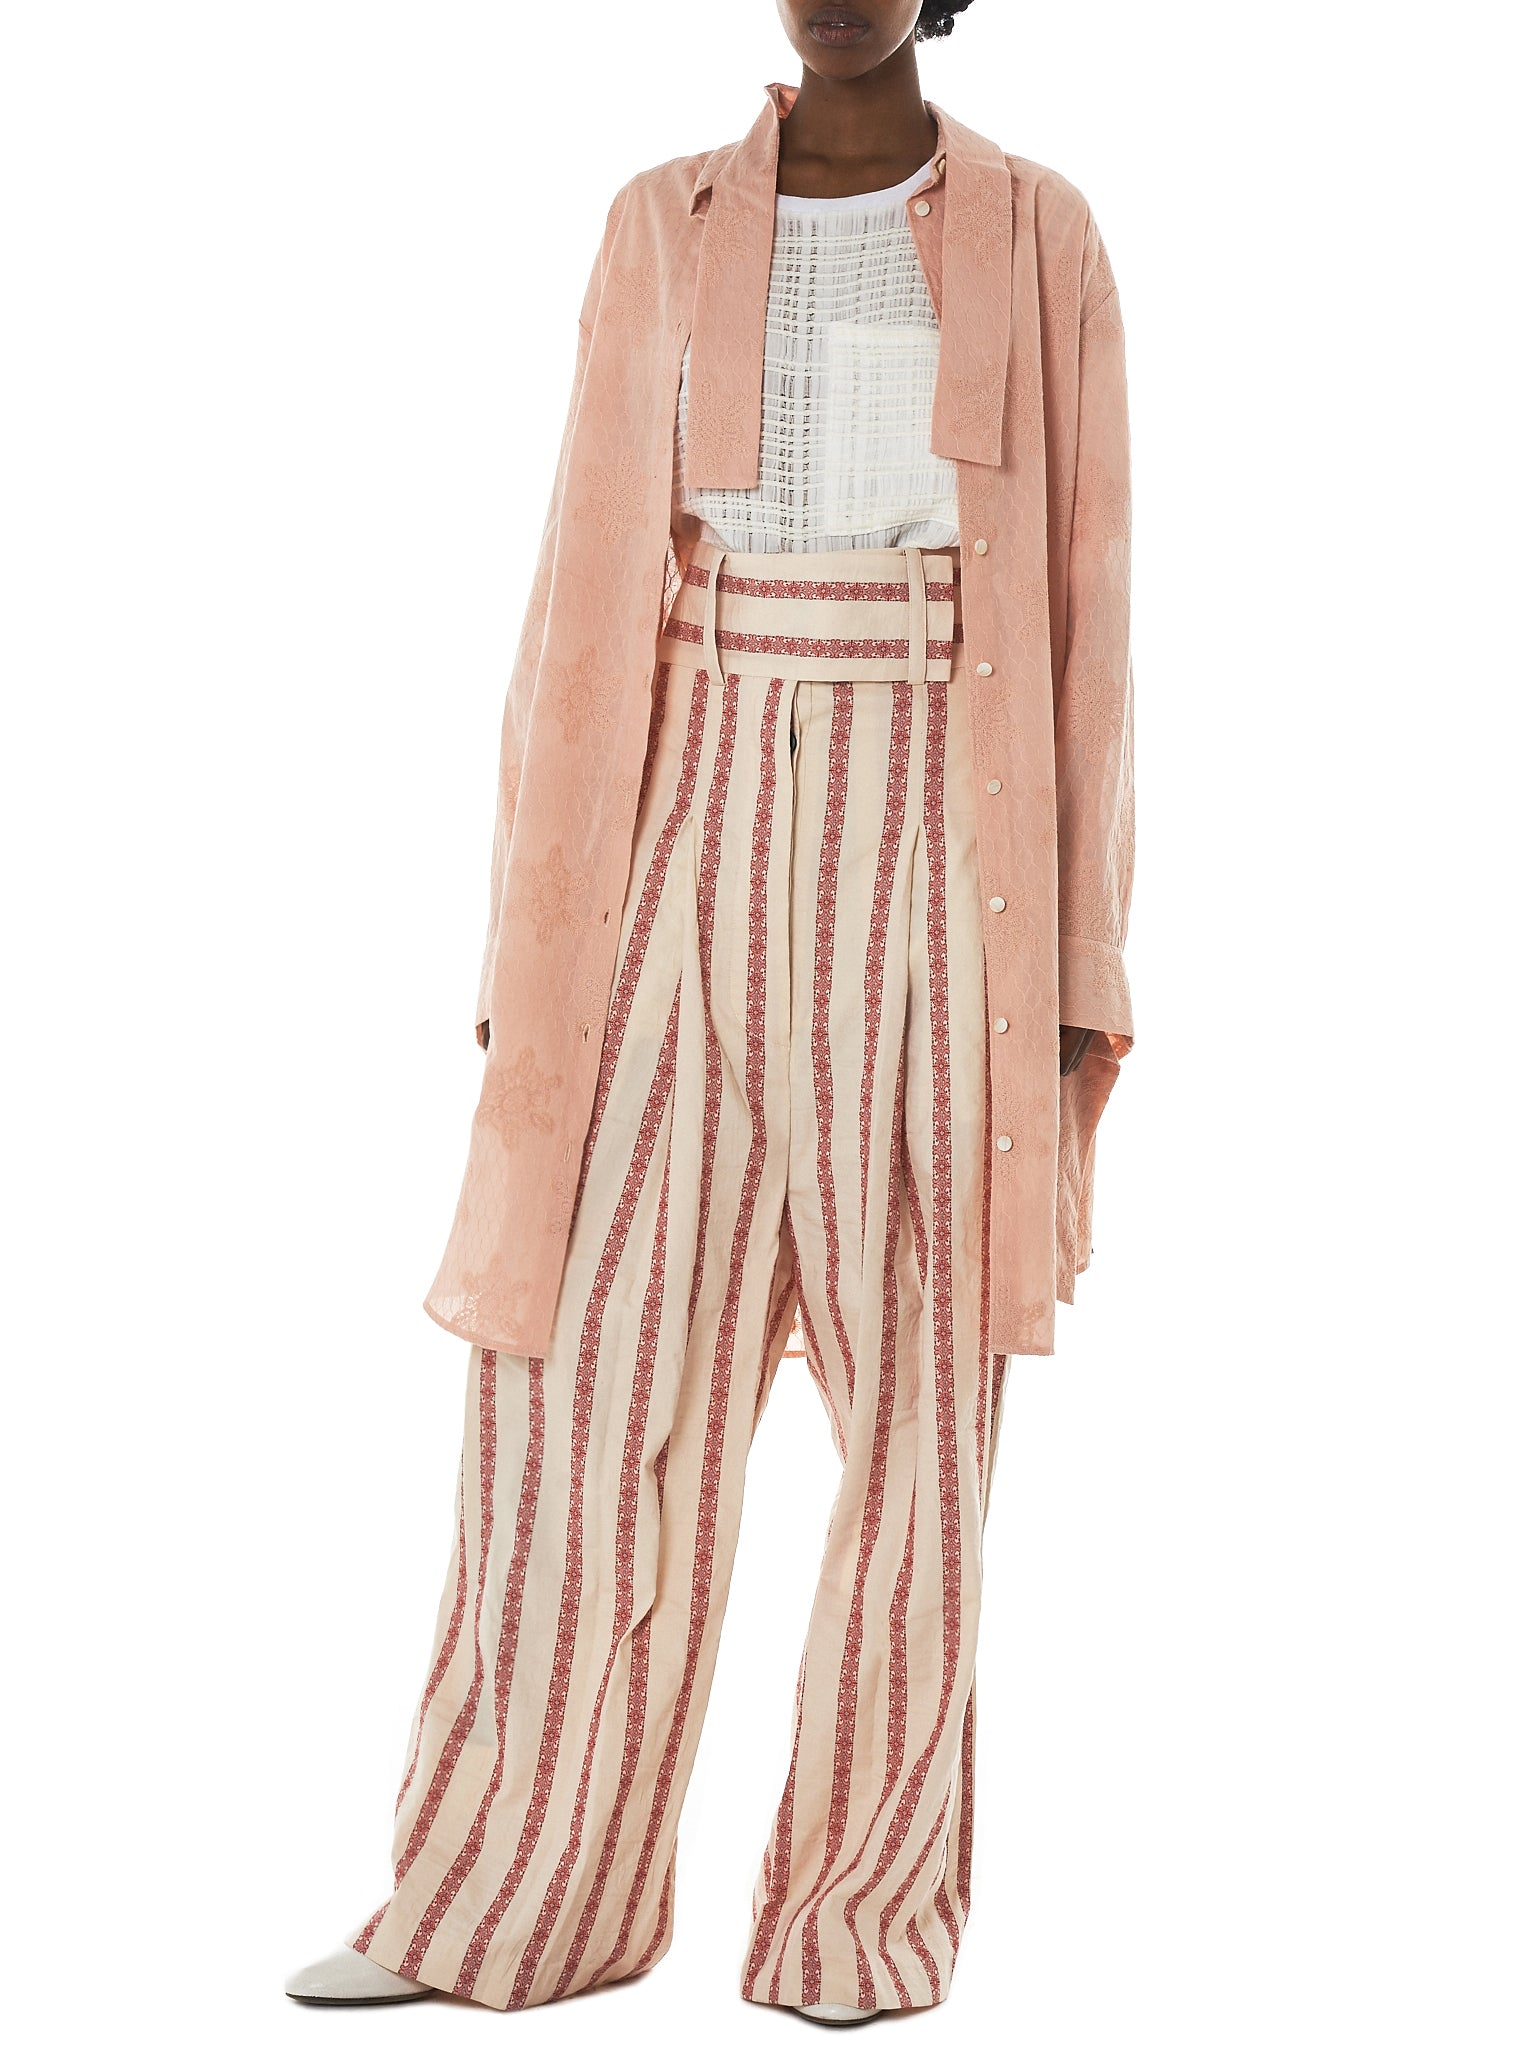 Daniel Gregory Natale Striped Trousers - Hlorenzo Style